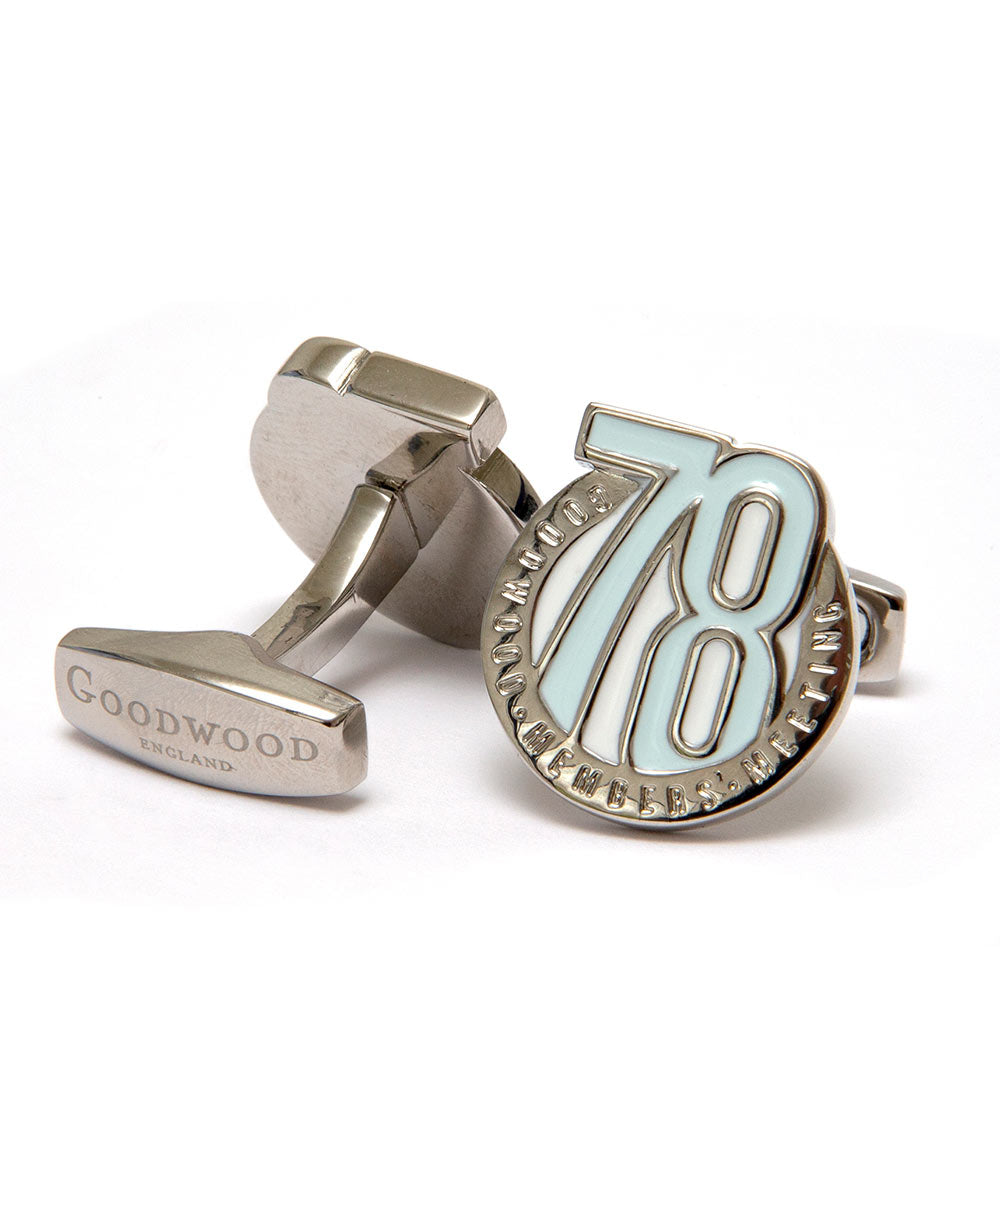 Bar fitting 78mm cufflinks in blue and chrome